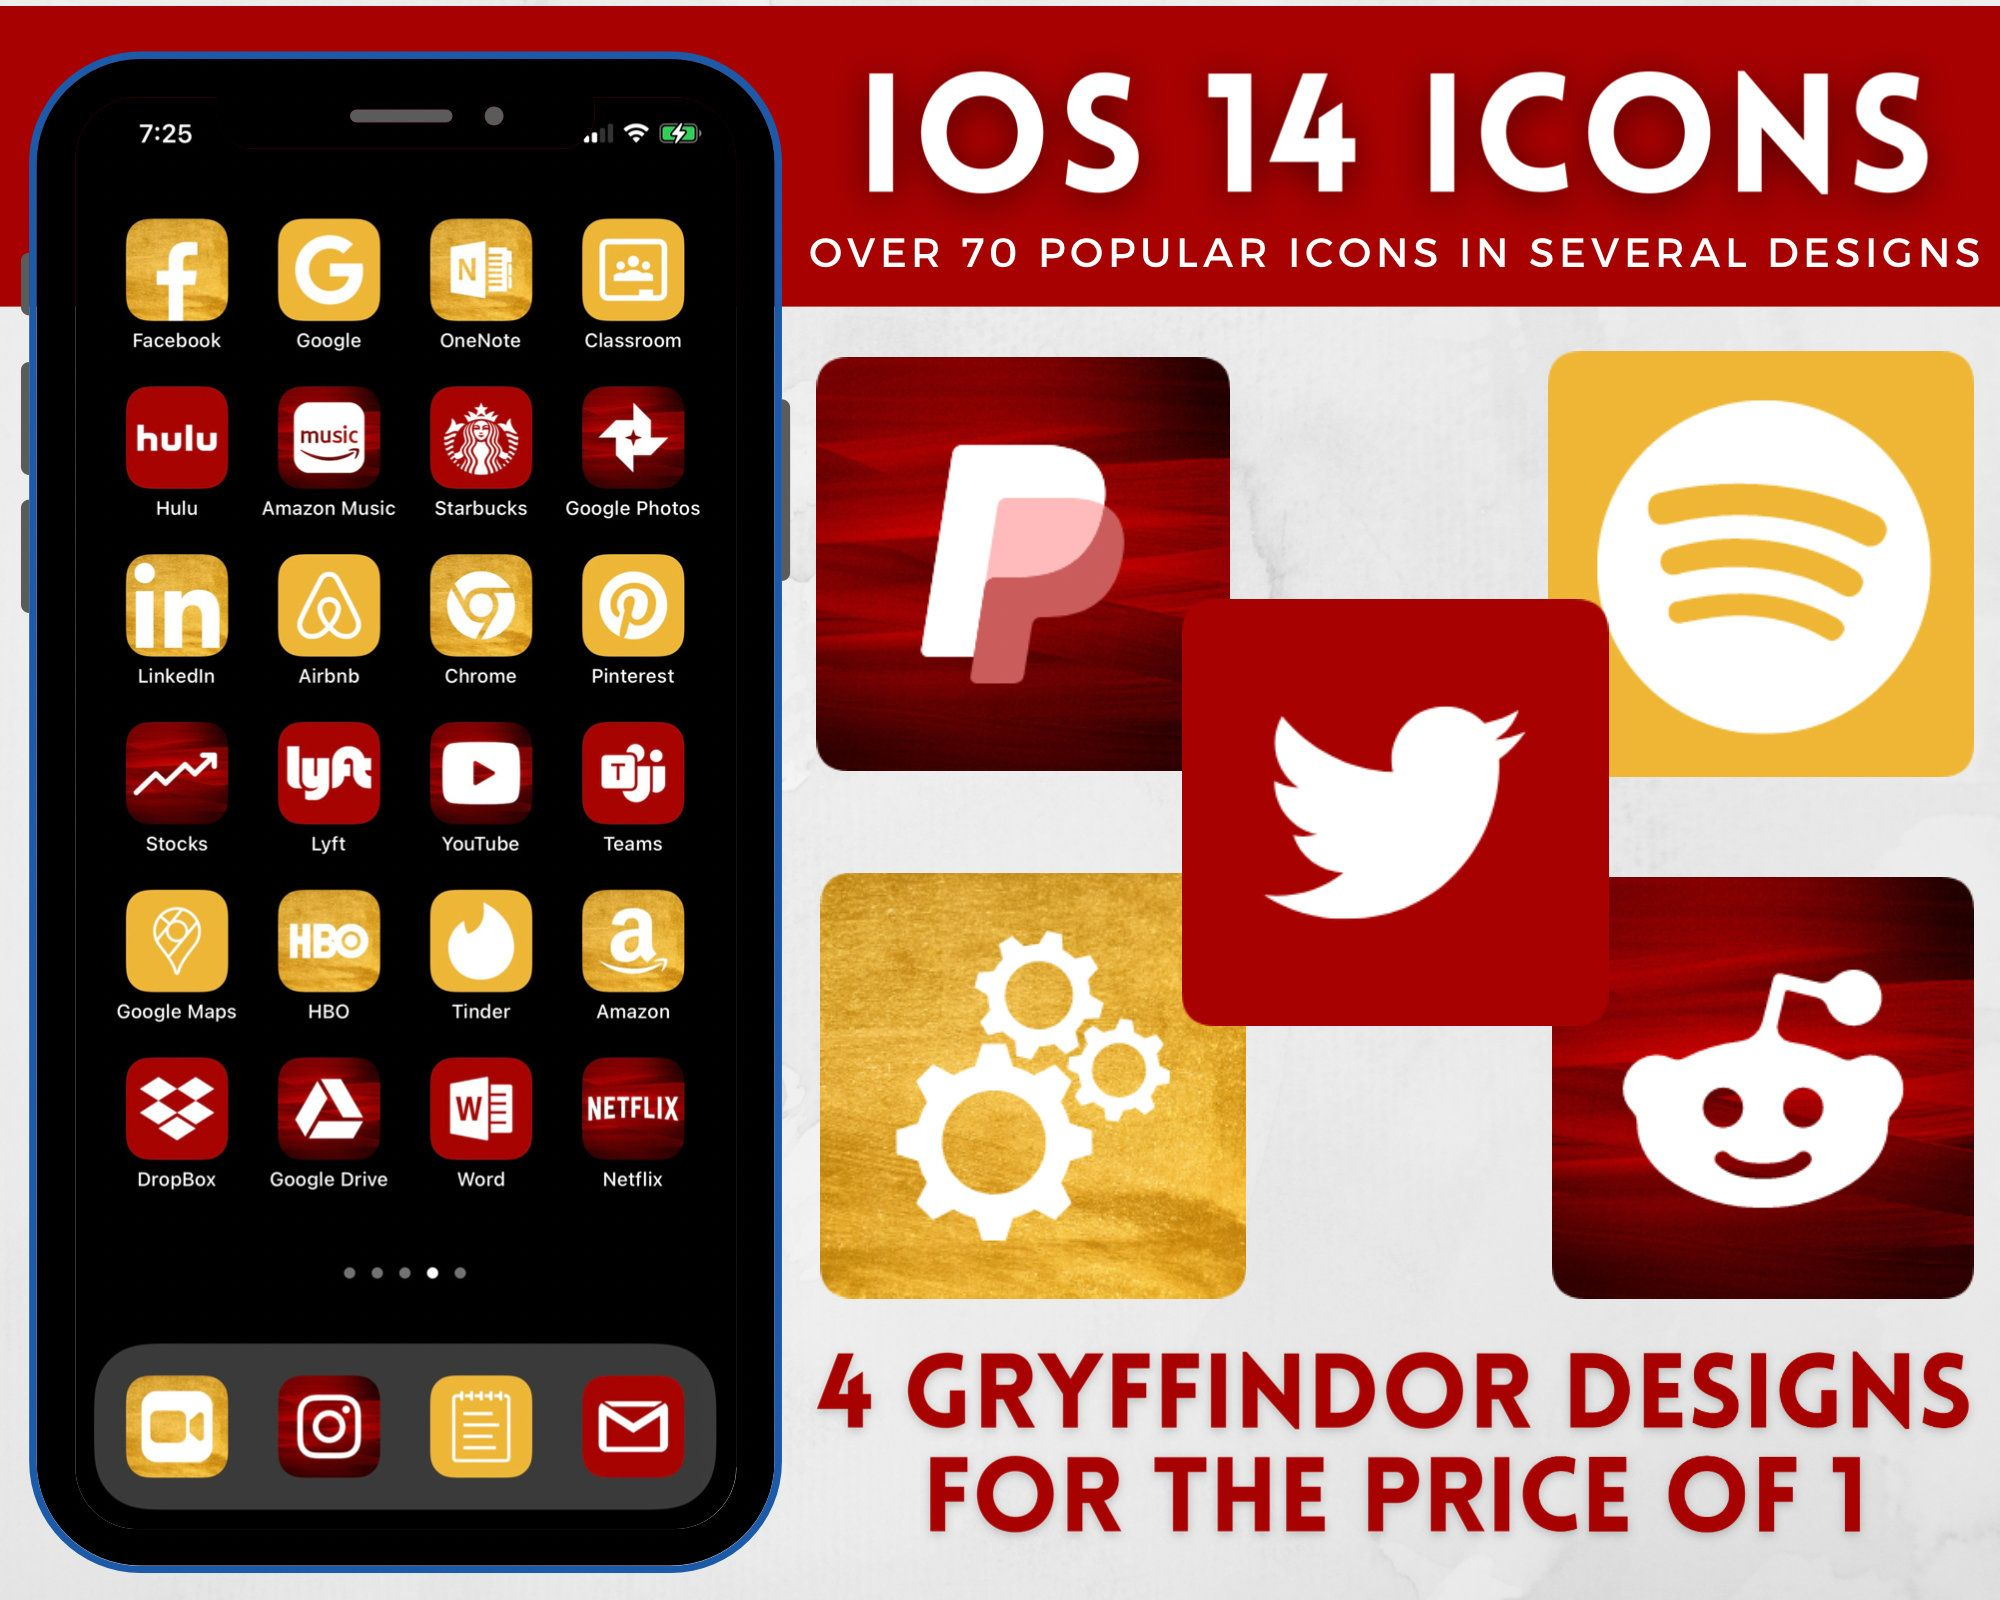 Iphone Ios 14 App Icons Harry Potter Gryffindor Aesthetic Etsy In 2021 Harry Potter App App Icon Harry Potter Phone